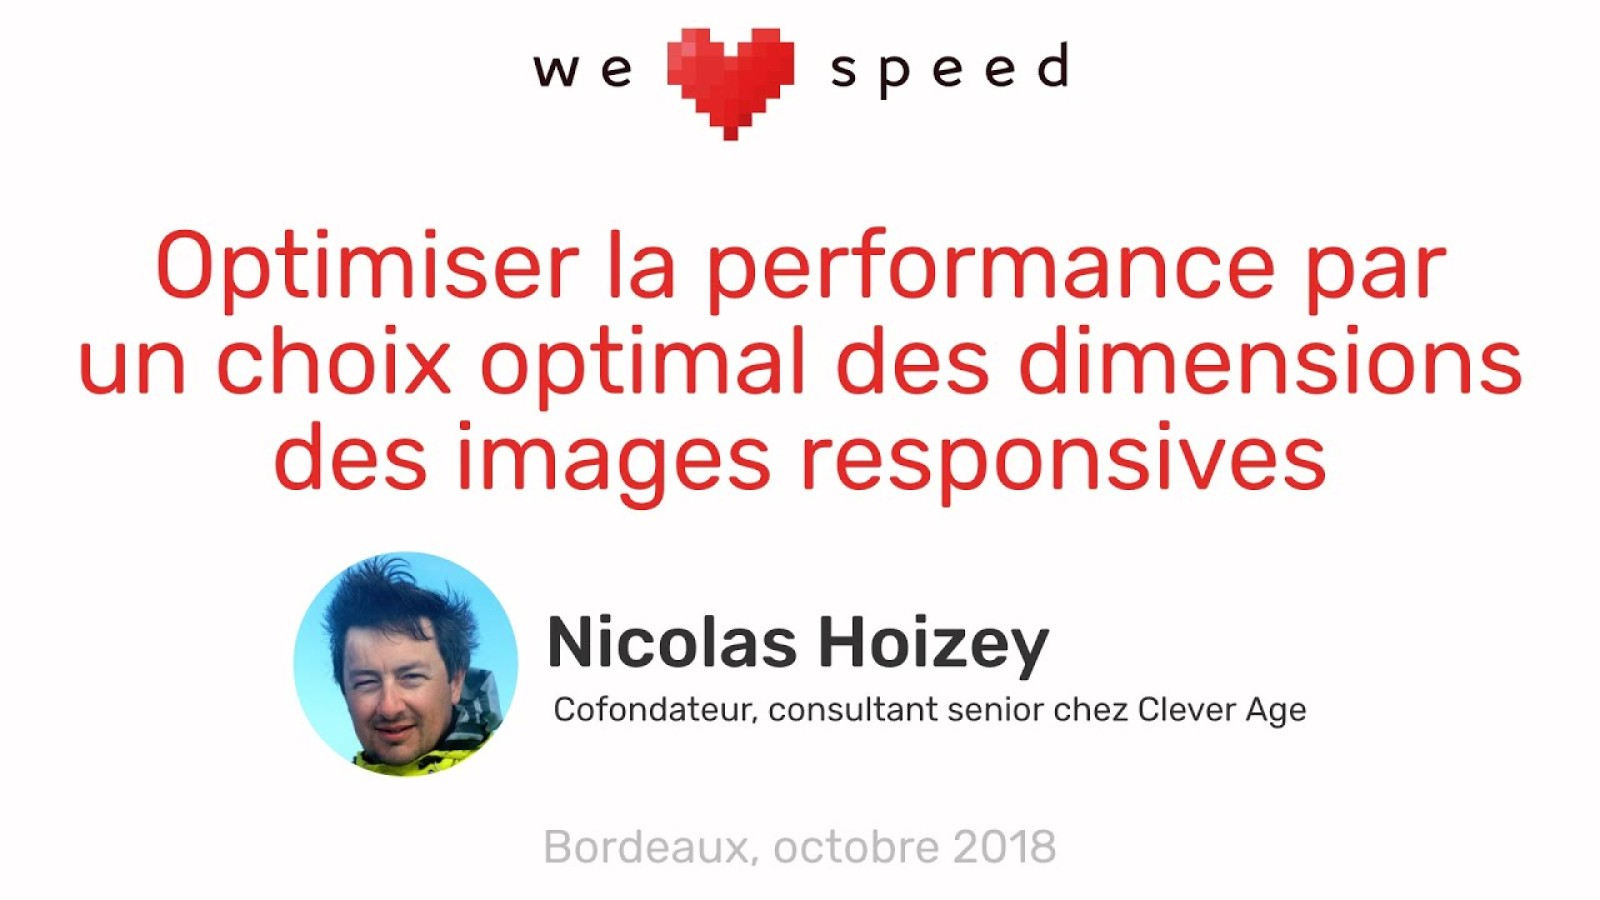 Optimiser la performance par un choix optimal des dimensions des images responsives